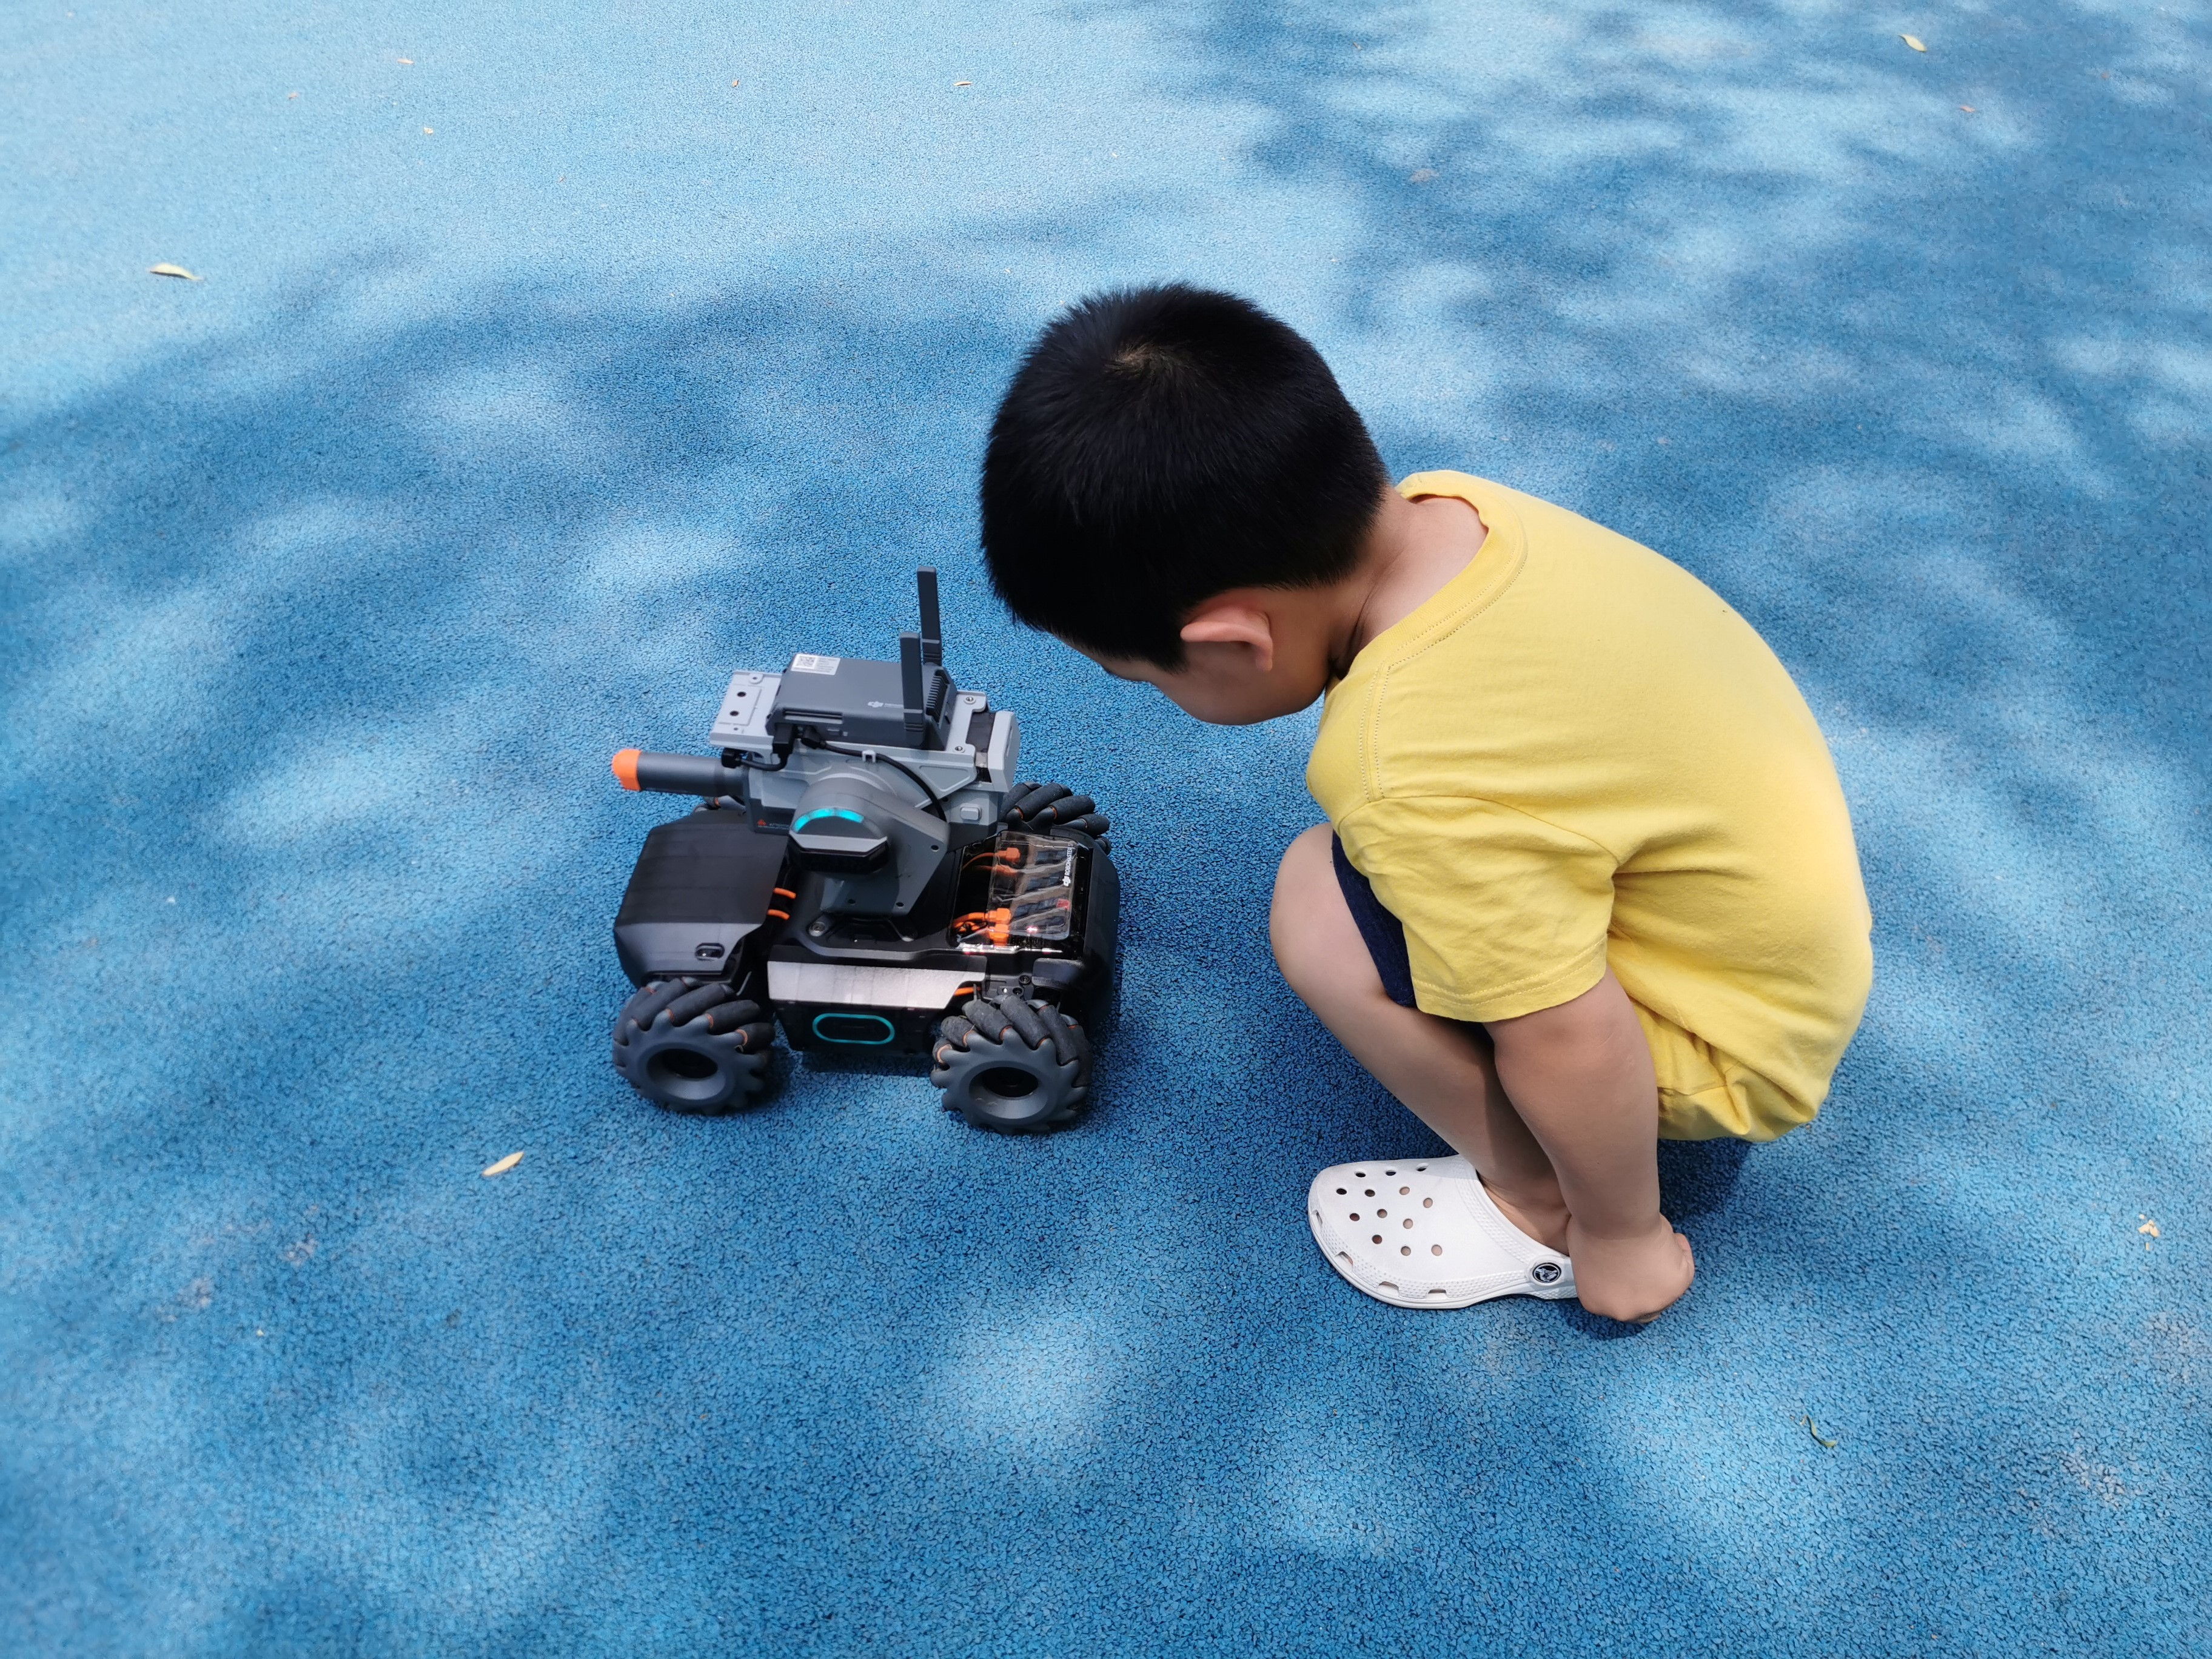 a boy playing romomaster s1